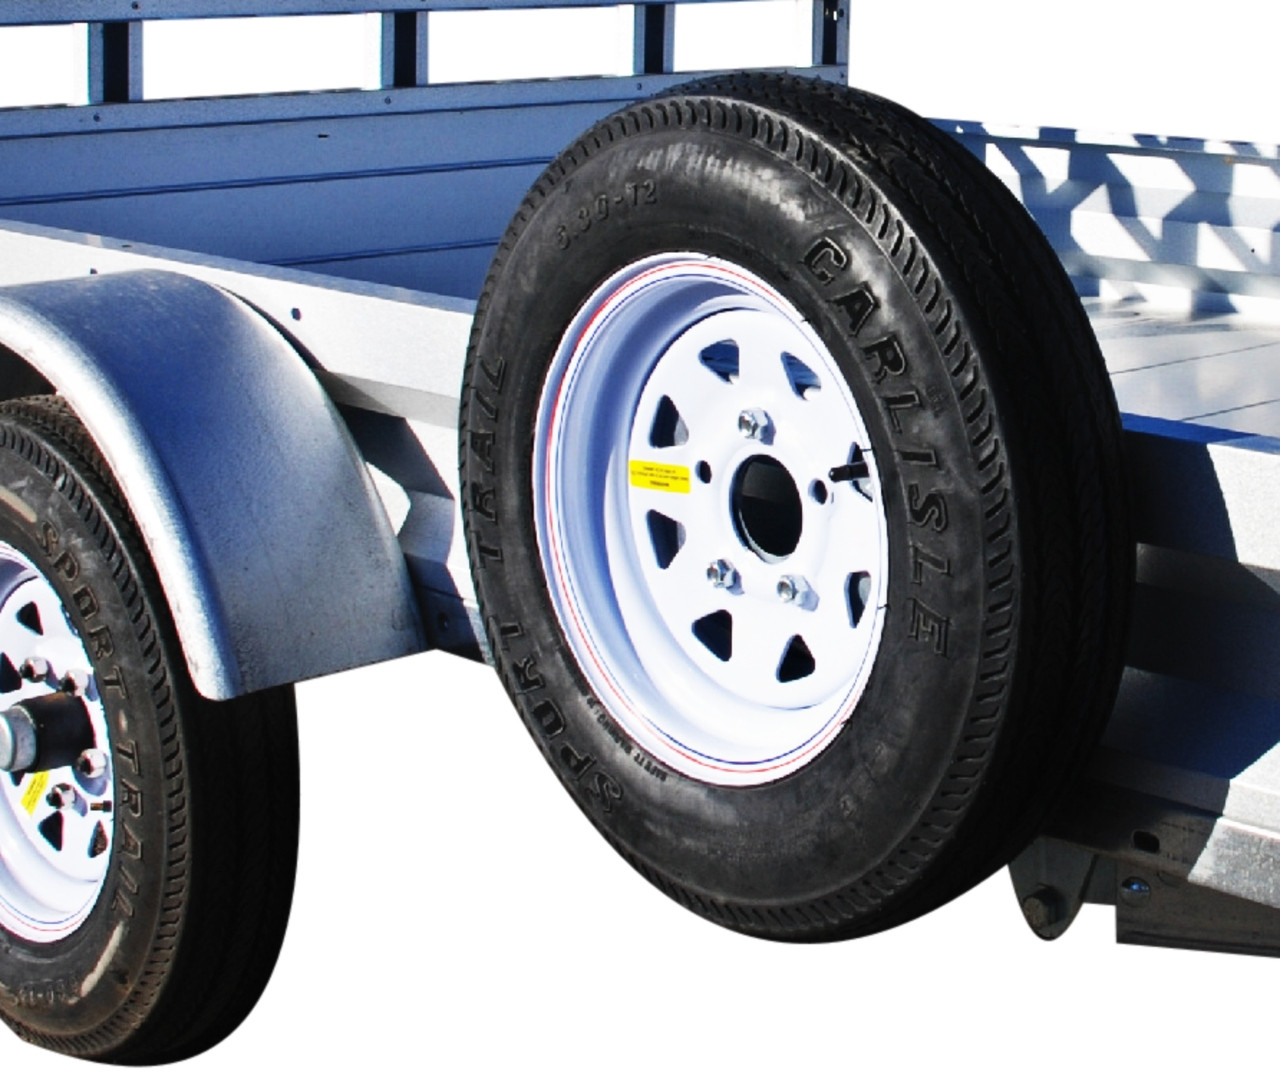 Solid Side   Will fit on all Marathon and Stirling trailers except 4' X 6', S4i and S5i model.